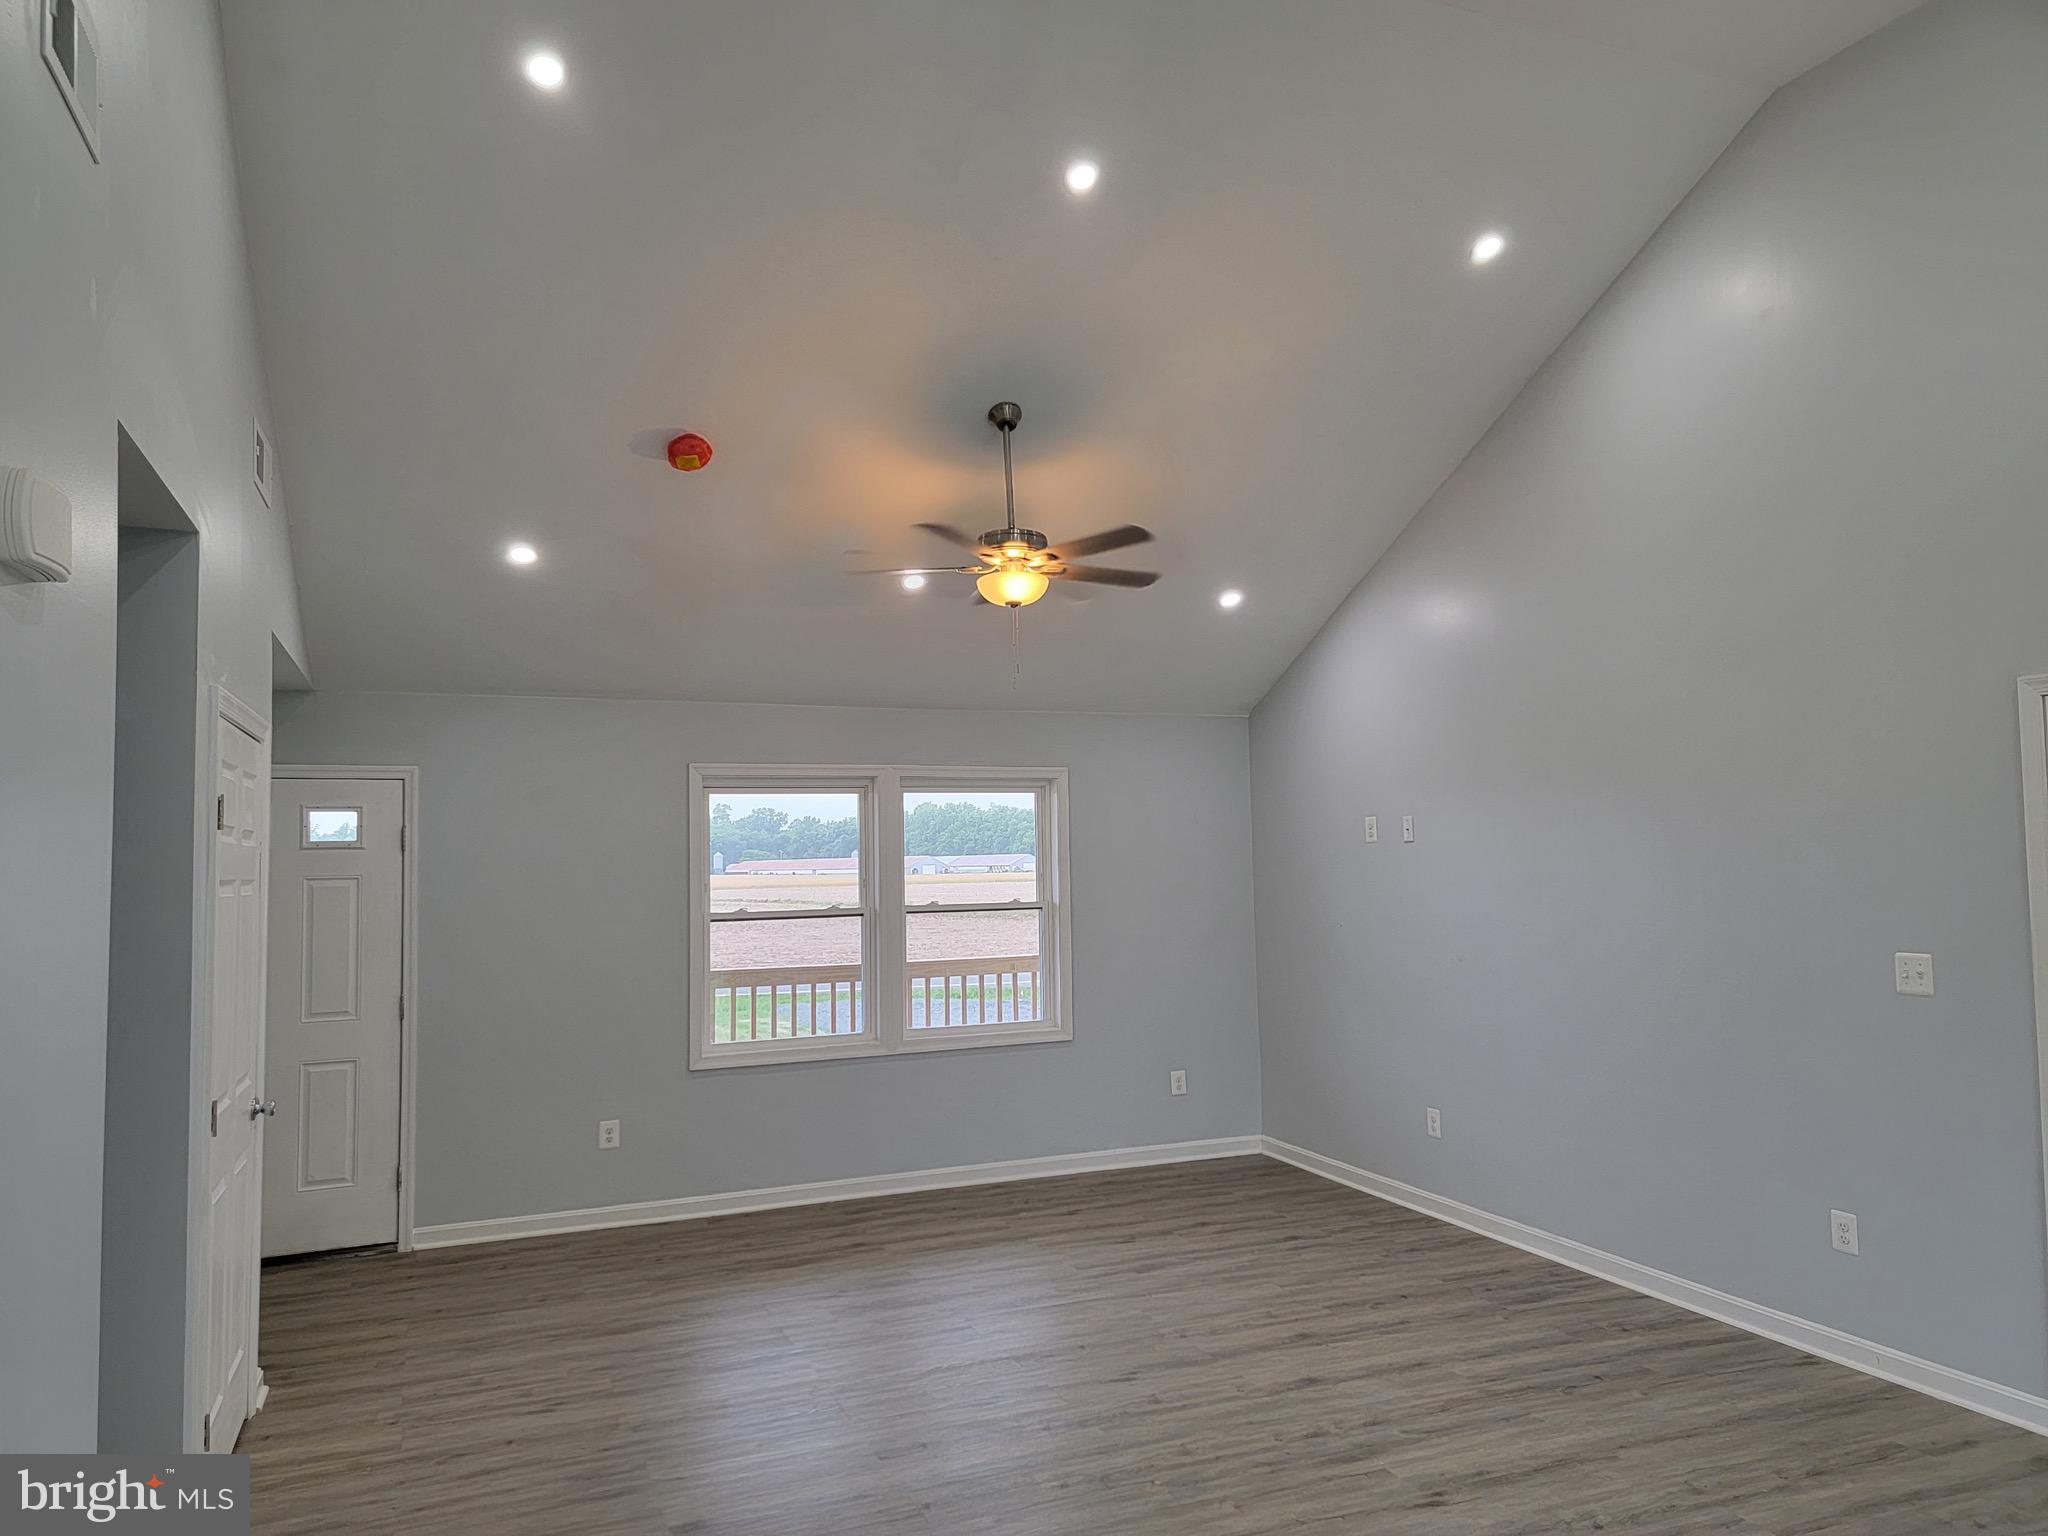 Incredible opportunity to own new construction in prime location with privacy and lots of opportunit